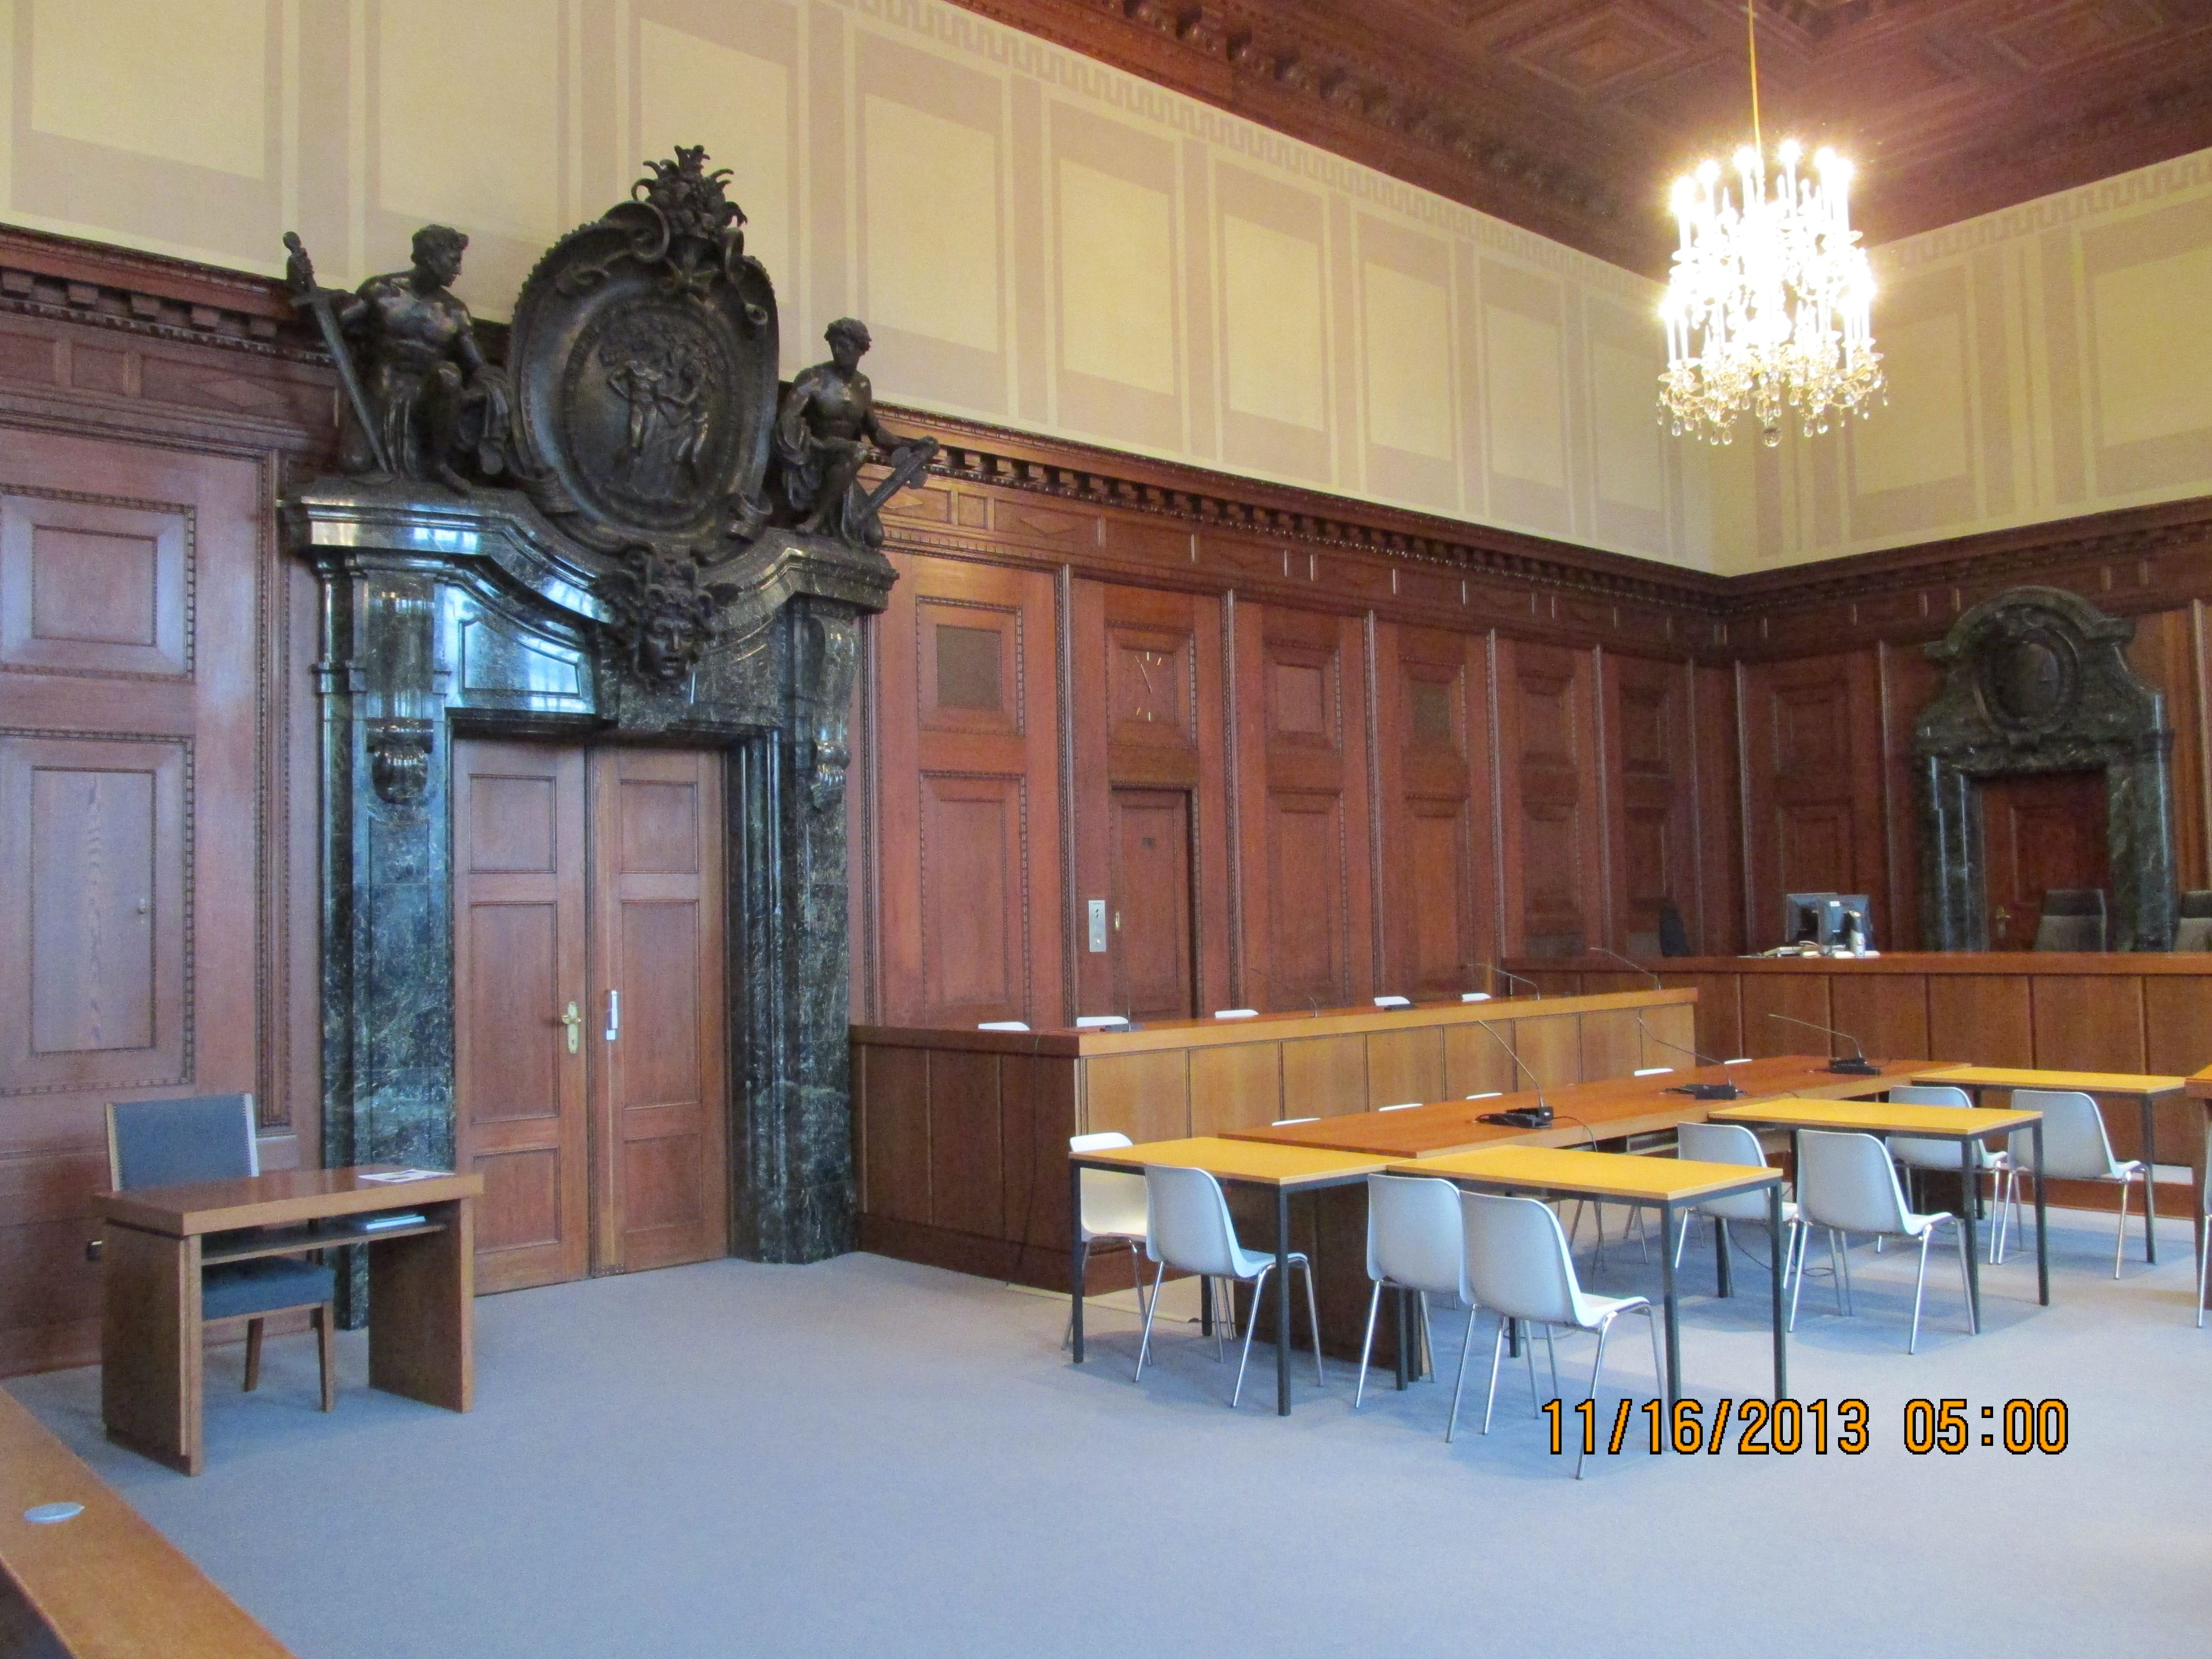 best images about hcc~nuremberg trials military tribunals on courtroom inside the palace of justice where the german war criminals were tried by the international